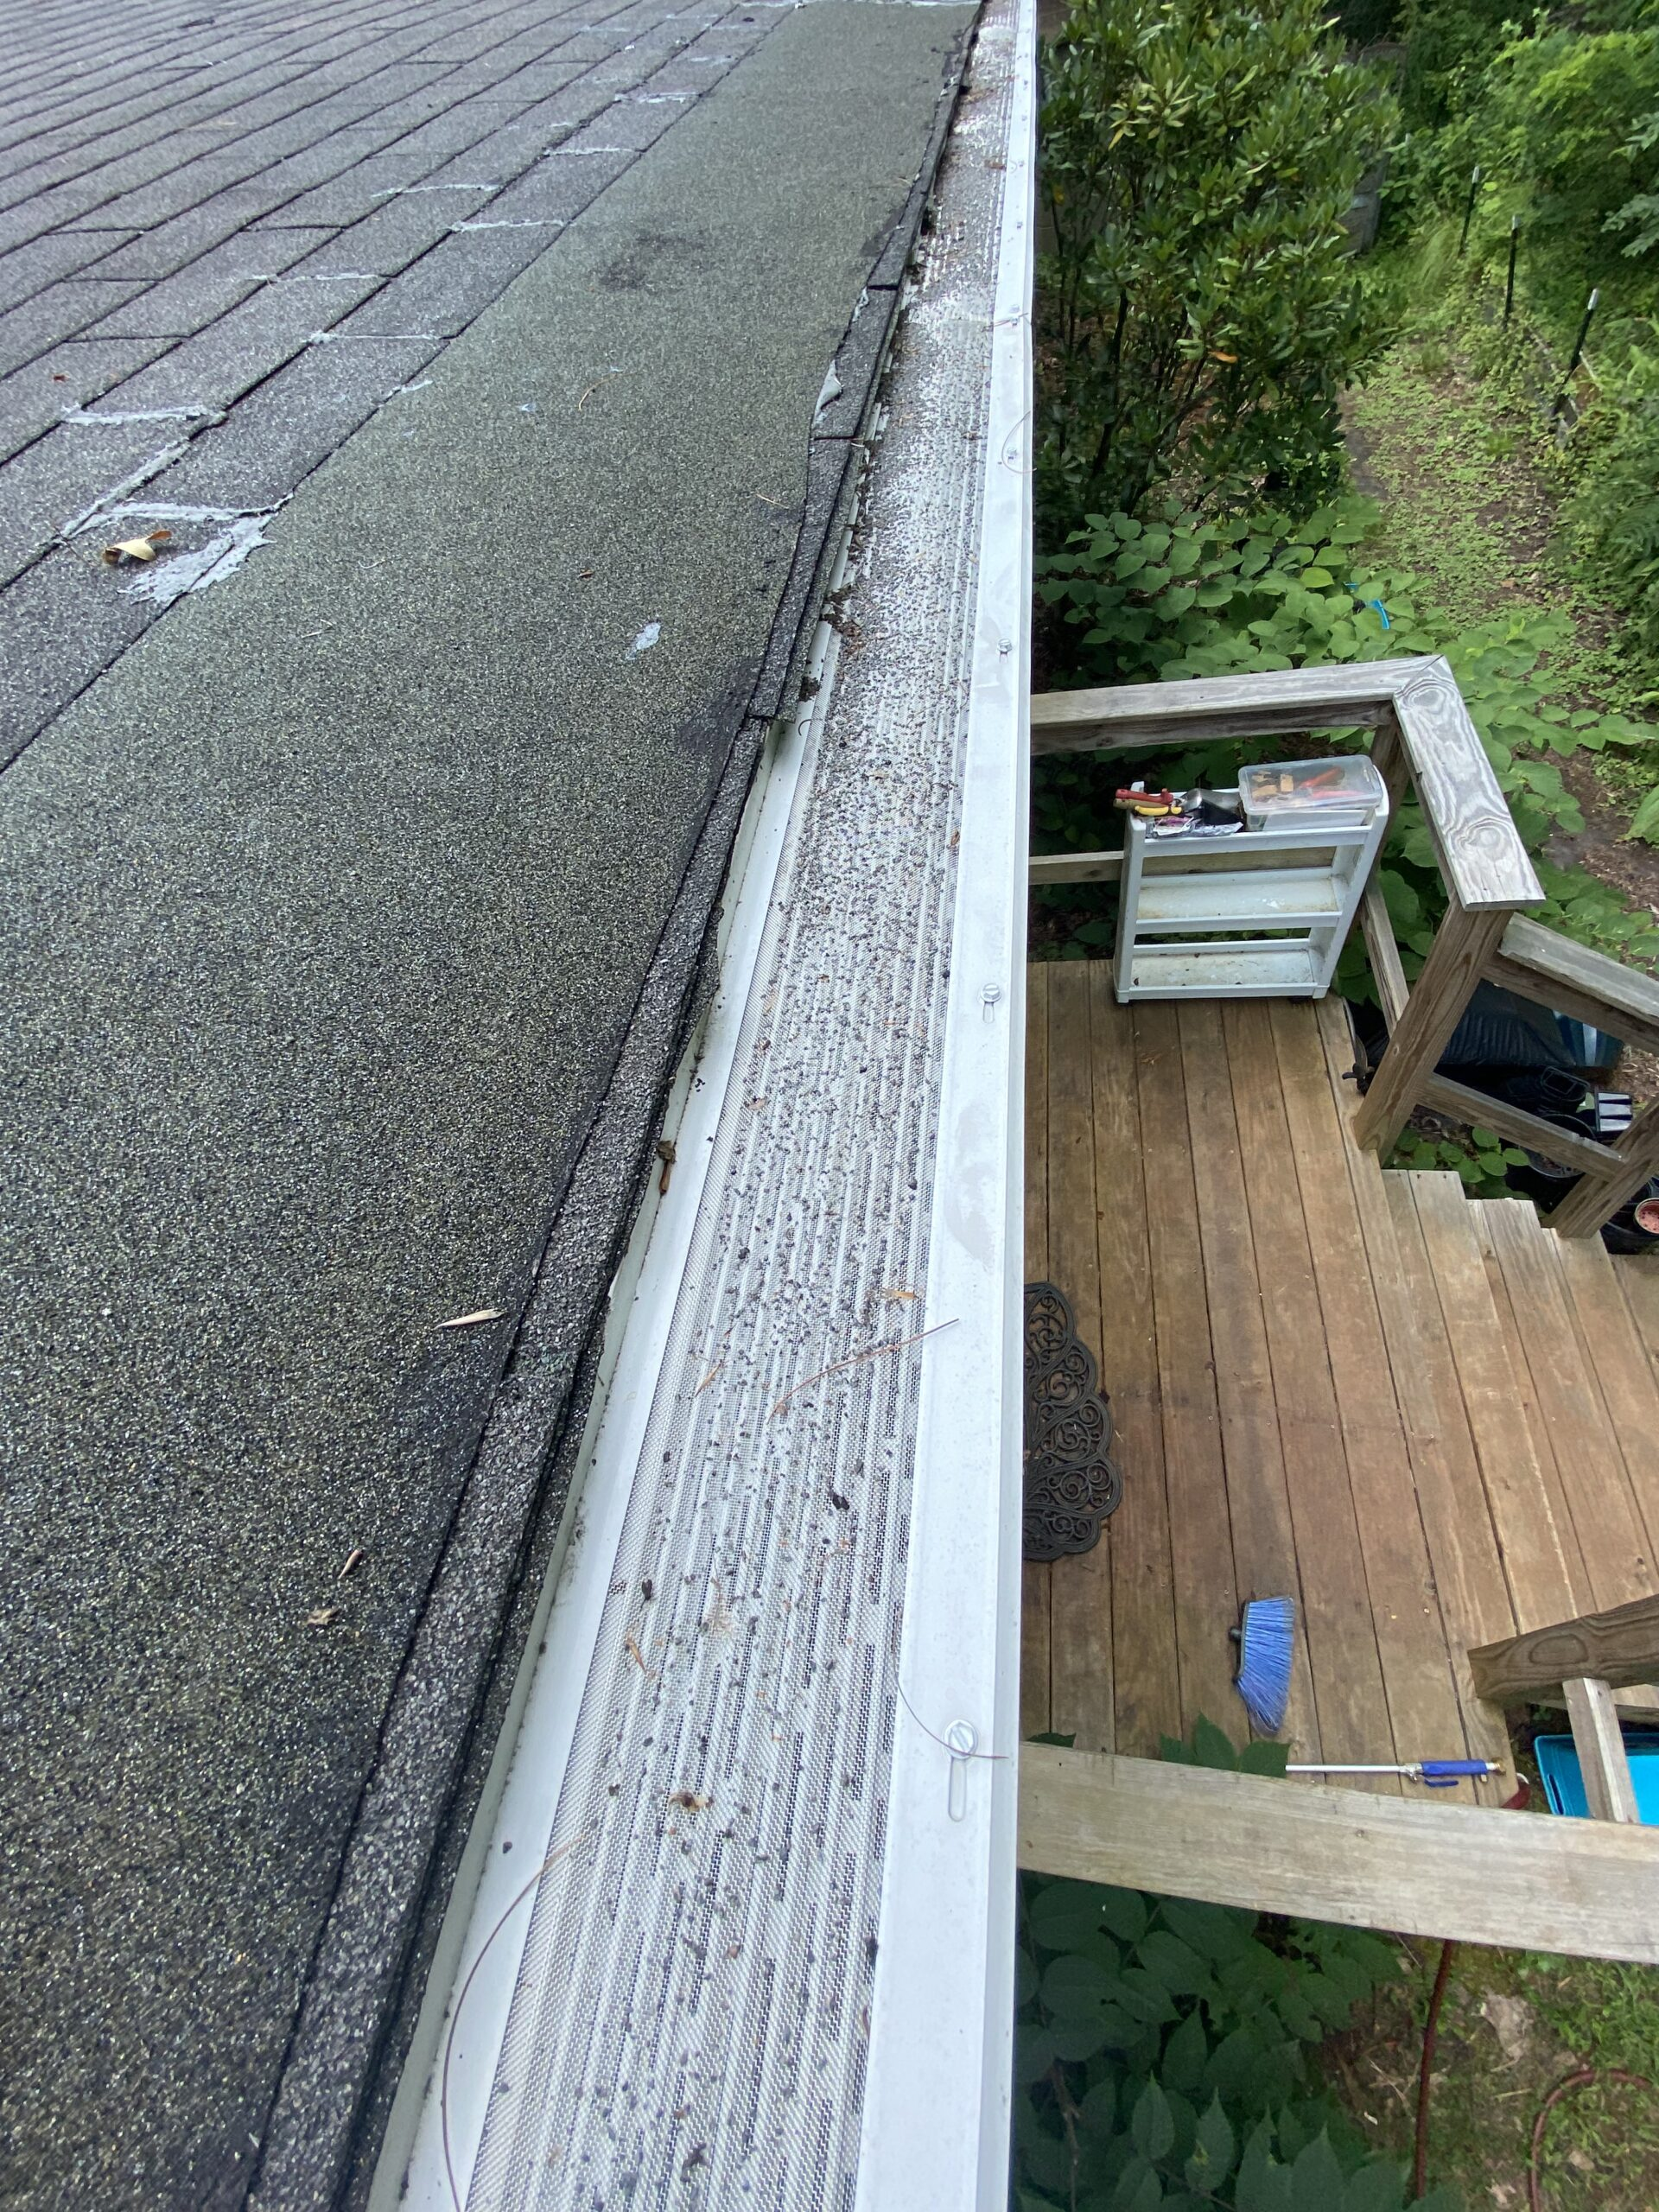 this is a picture of the edge of a roof with short shingles